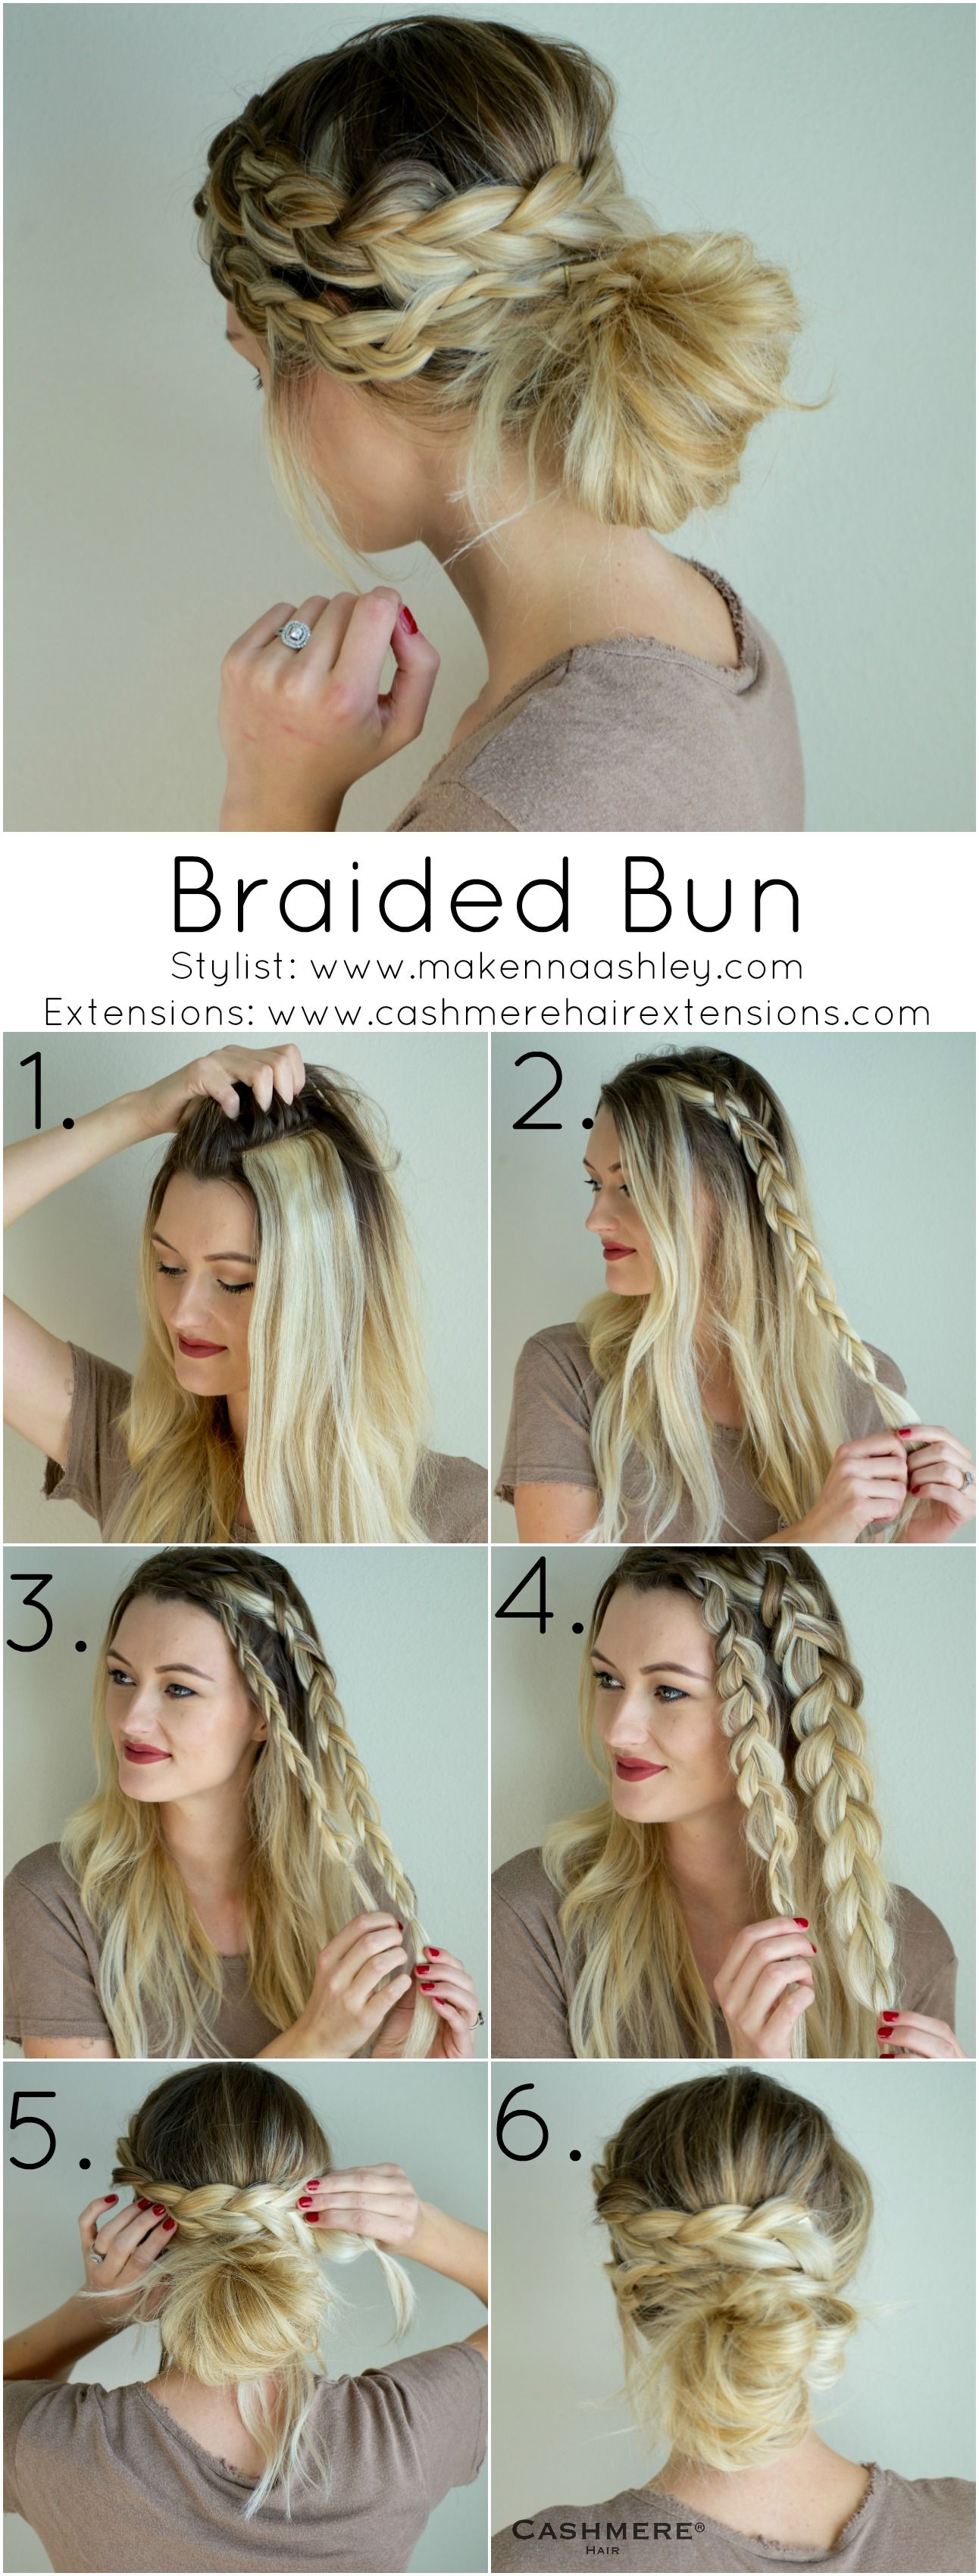 Braided Bun With Clip In Extensions • Cashmere Hair Clip In Extensions